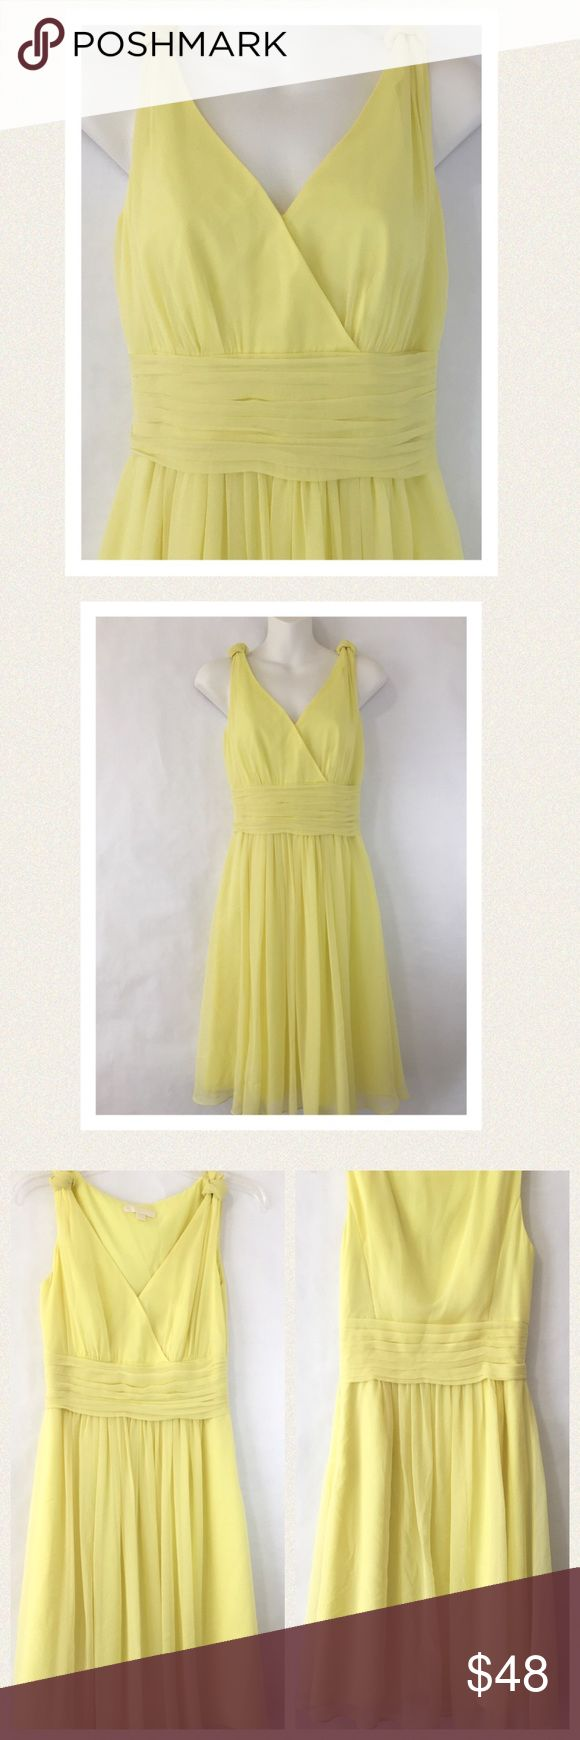 """Ann Taylor silk chiffon dress Light as a whisper,!this lovely silk chiffon dress in daffodil yellow fits like a dream. It features a flattering decollate neckline with a wide shirred waistline and decorative knot ties at the shoulder. Zips up the side. Fully lined with double lining in skirt area. Lining is polyester. Dress was worn once In excellent condition but has a pinhead size hole in back near hem. (See last photo) 🔹bust 34"""" 🔹waist 26.5"""" 🔹hips 36"""" 🔹chiffon length 38"""" lining length…"""